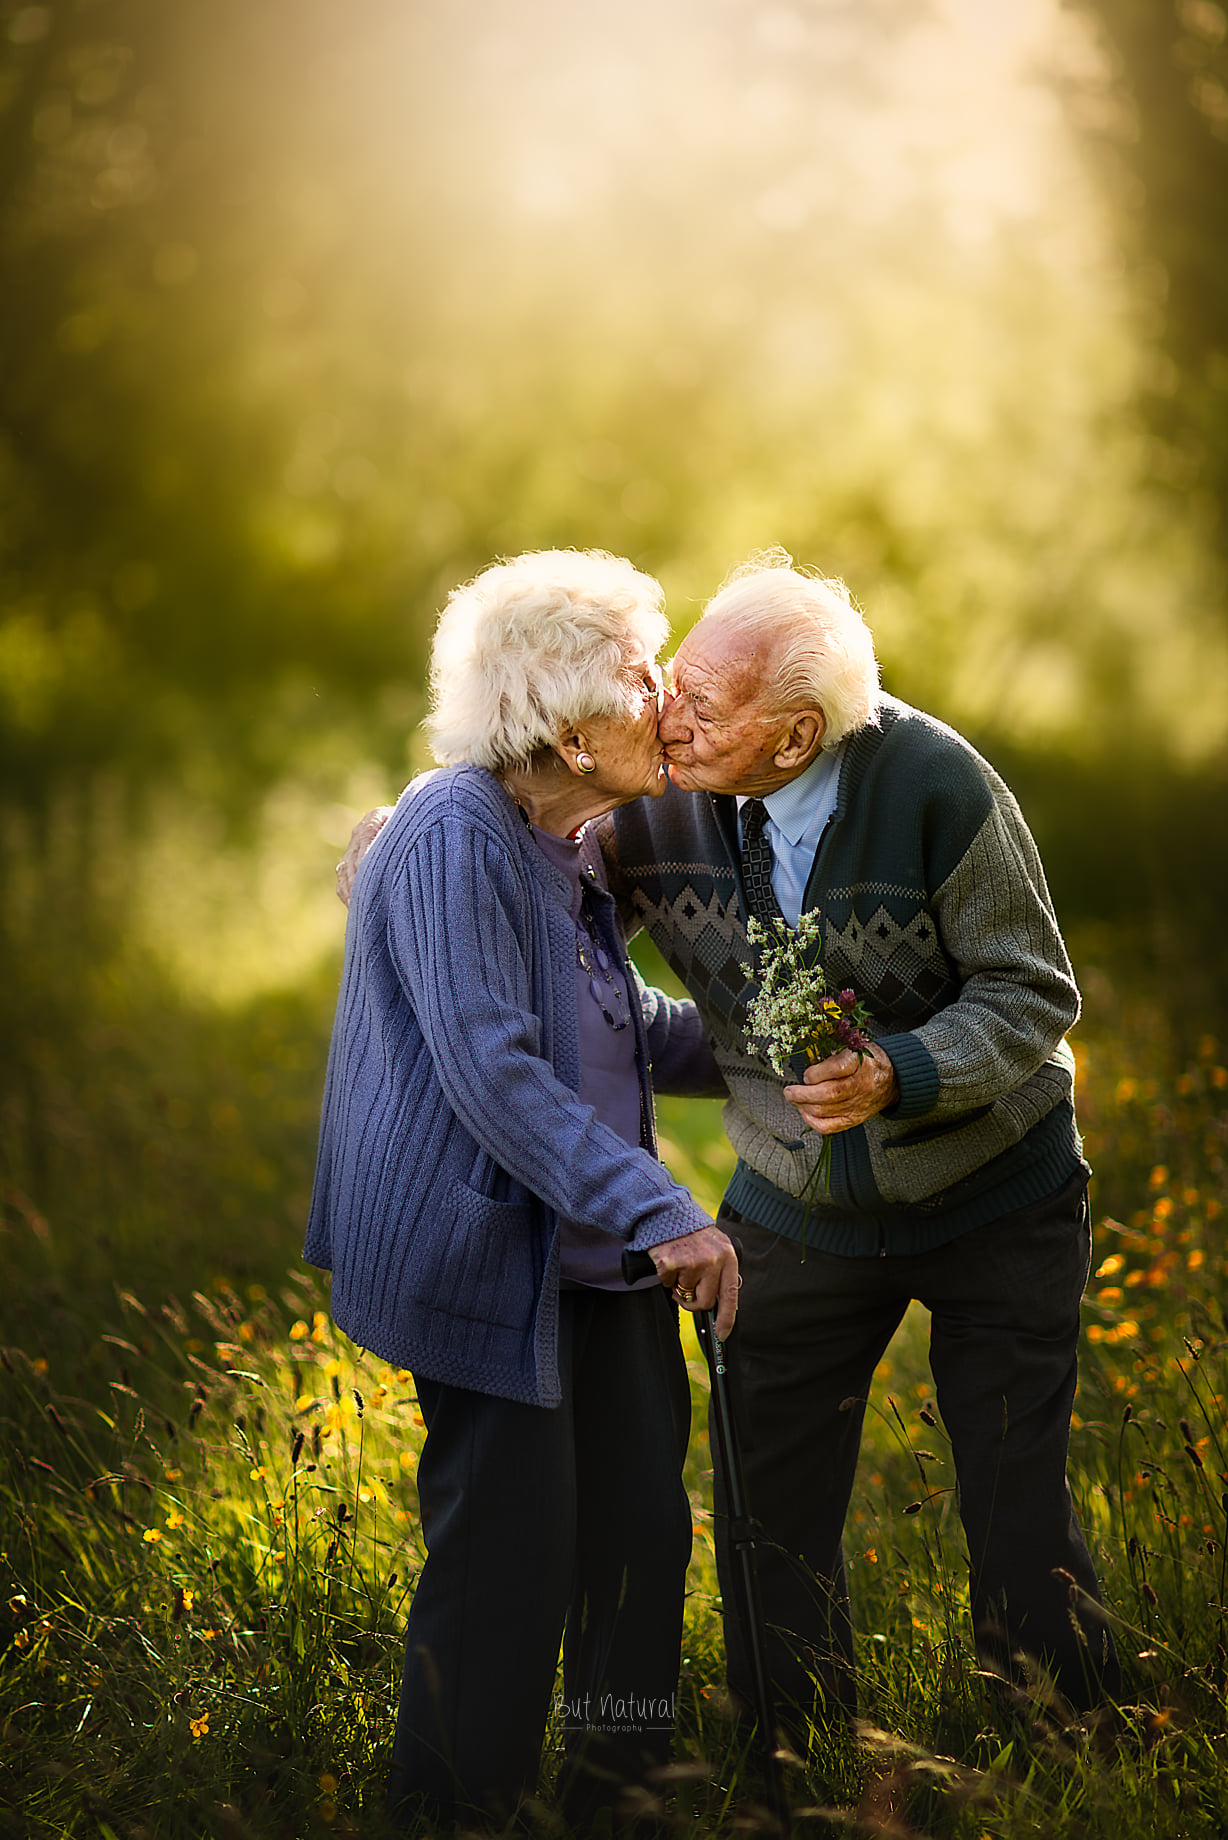 Elder couple kissing each other with love | But Natural Photography